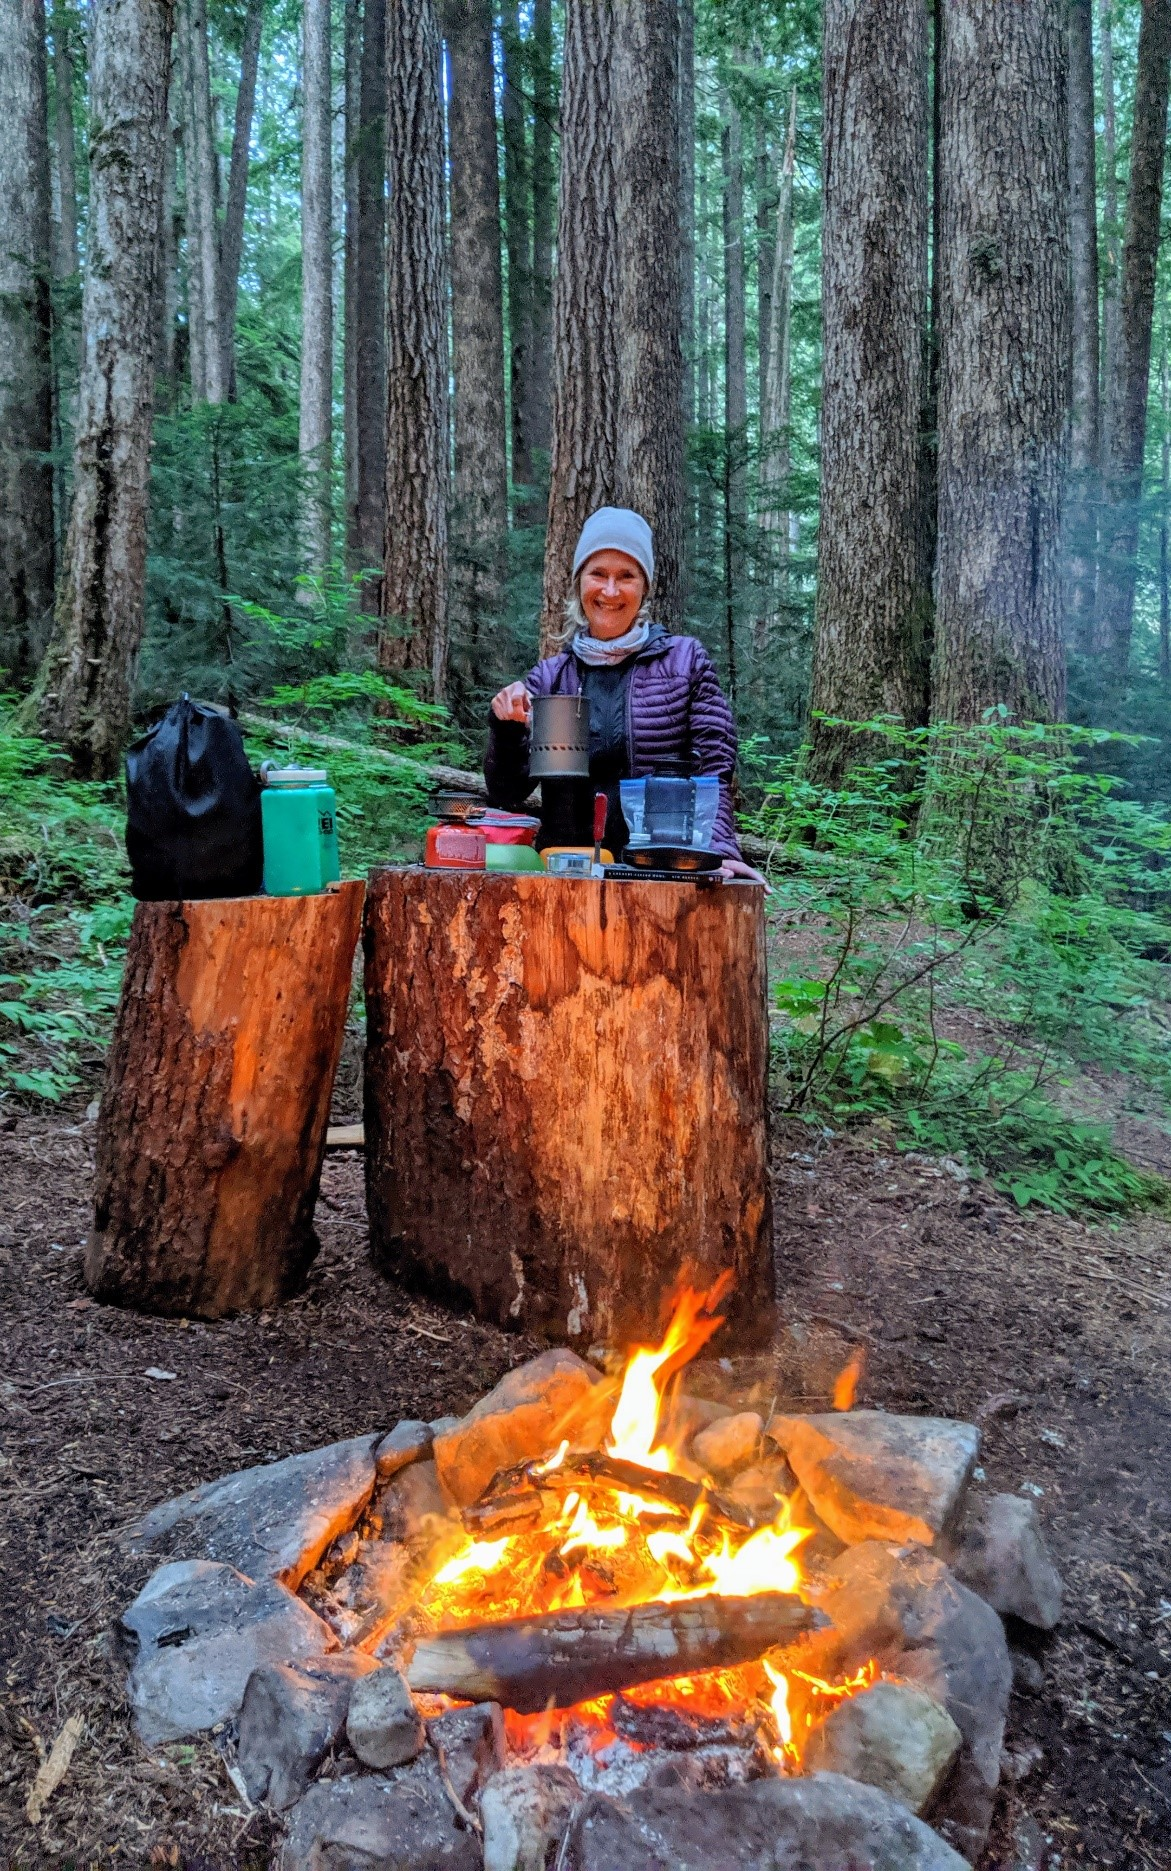 Trisha Wirta using two very large stump to lay out her supplies for dinner with a campfire in front of the stumps.